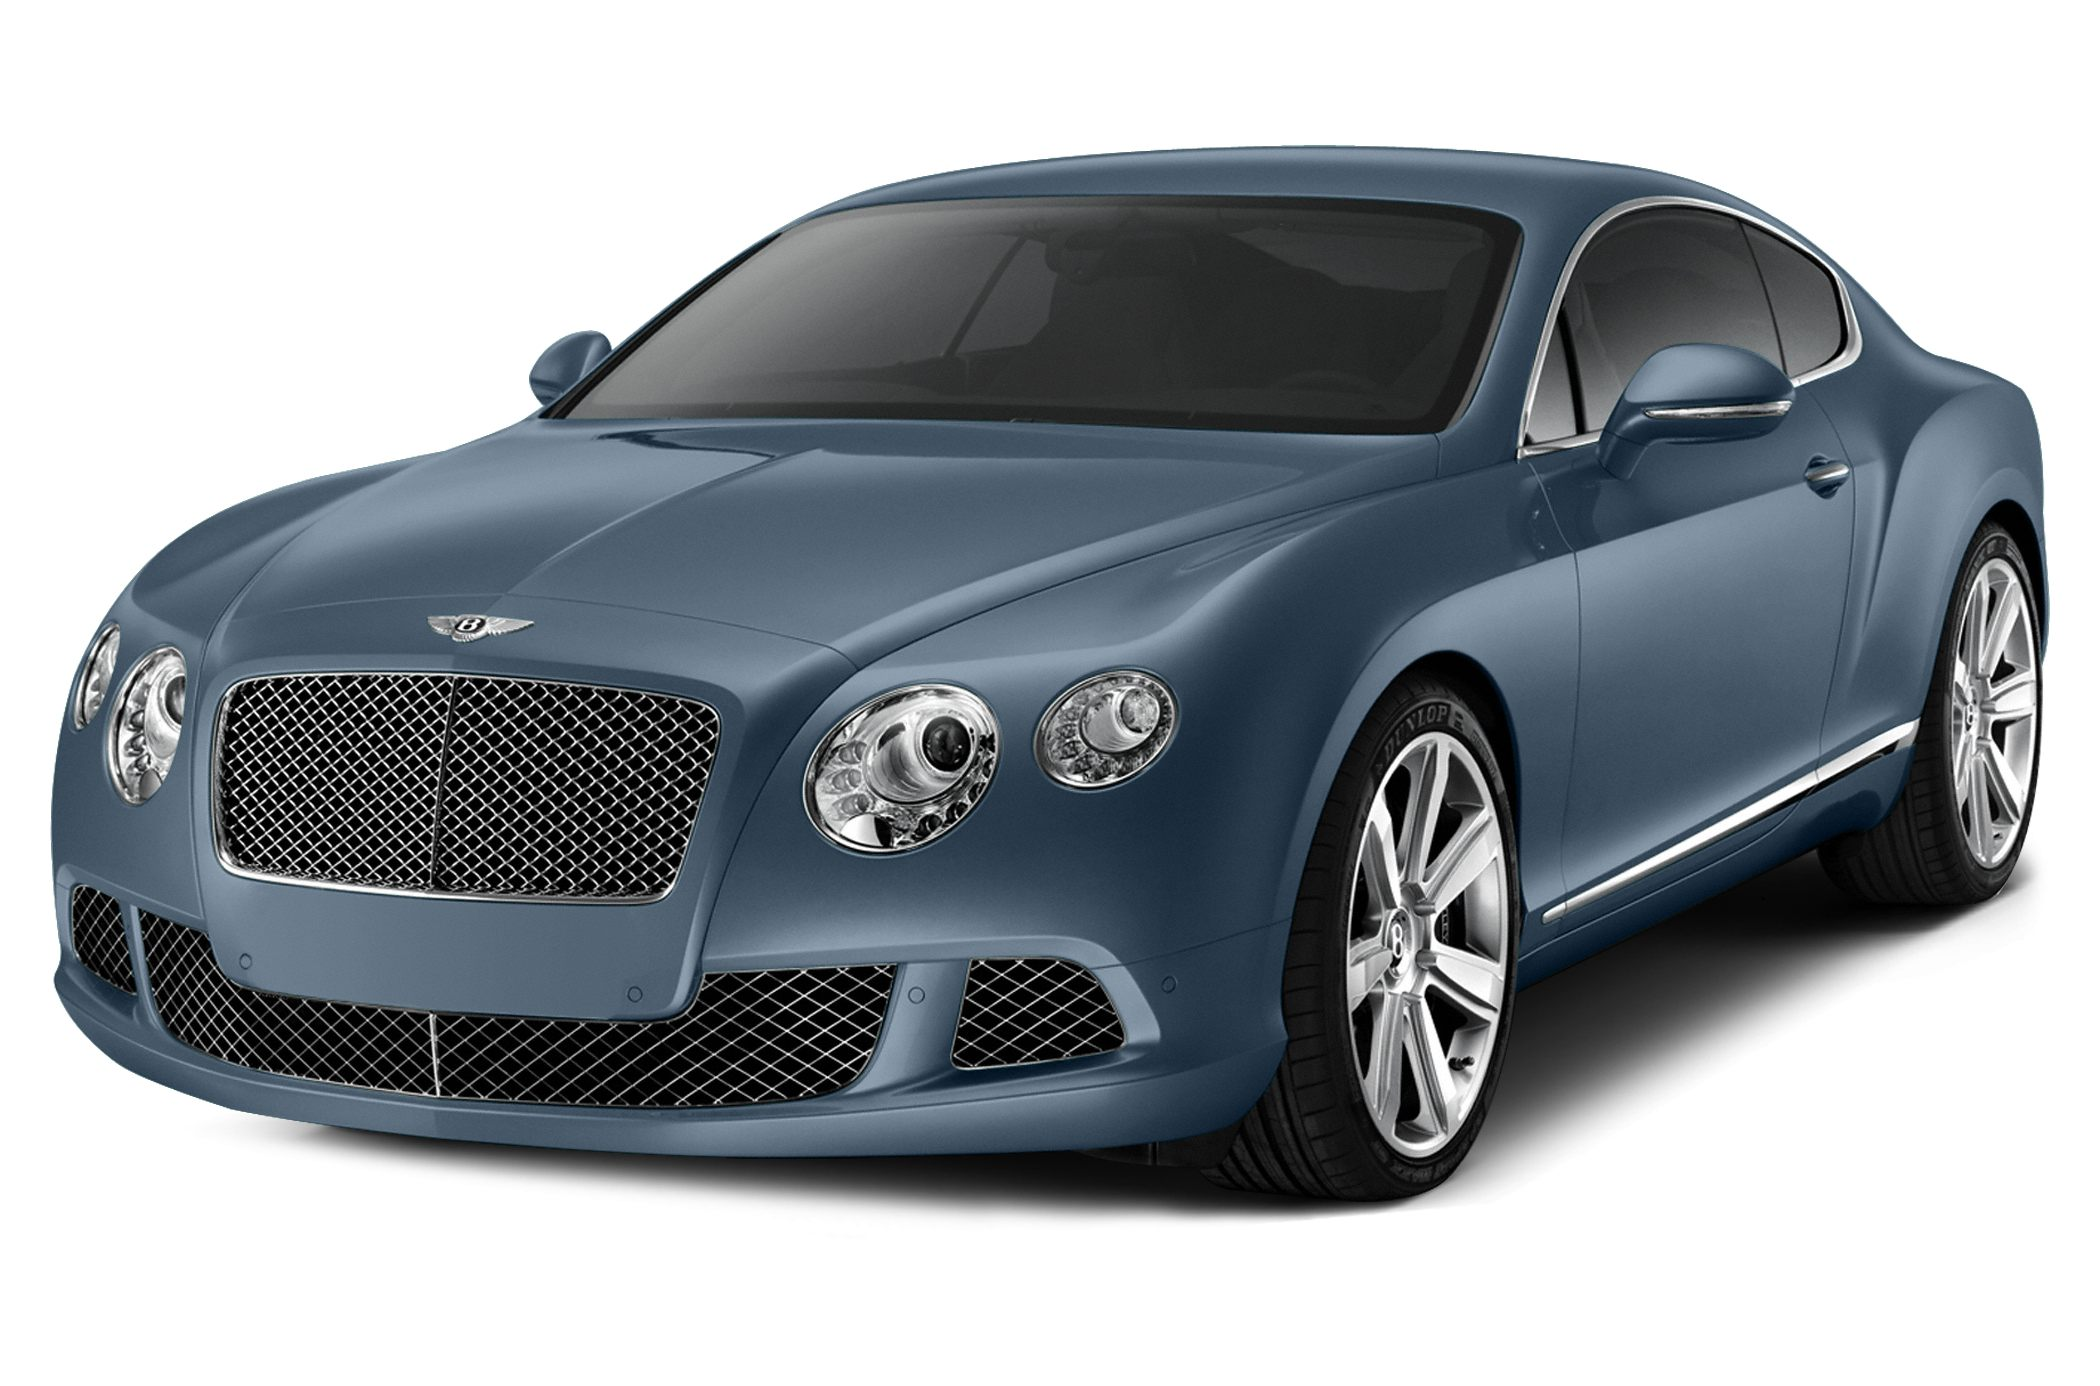 2014 Bentley Continental GT Base Coupe for sale in Miami for $225,060 with 17 miles.